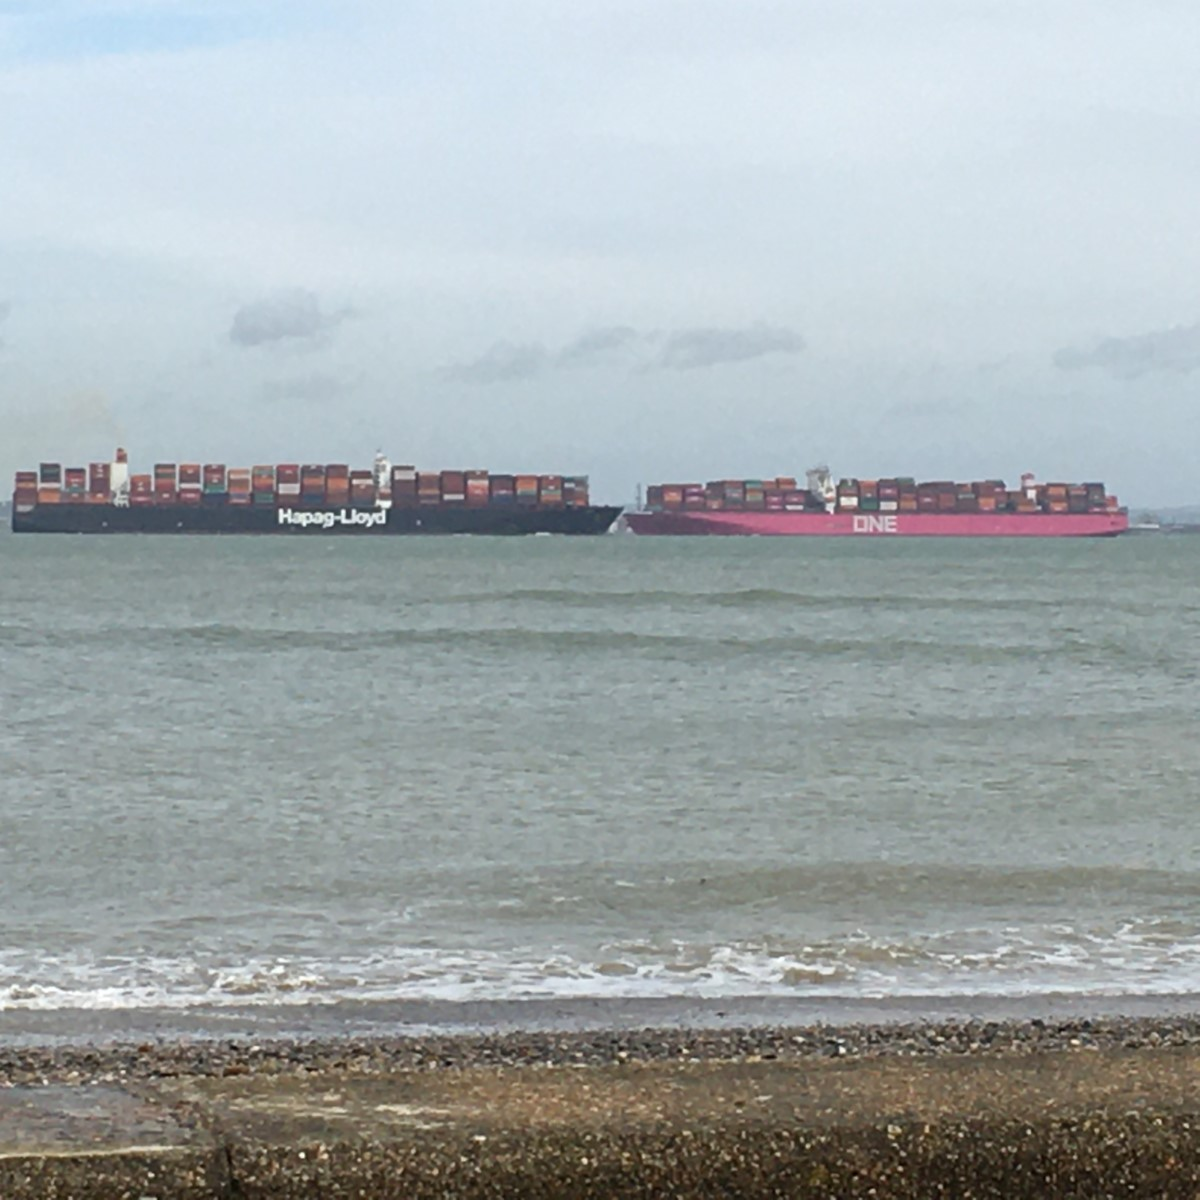 Two Container Ship Off Ryde, One Coming In, One Going Out. Ryde Canoe Lake (elmer Keith)